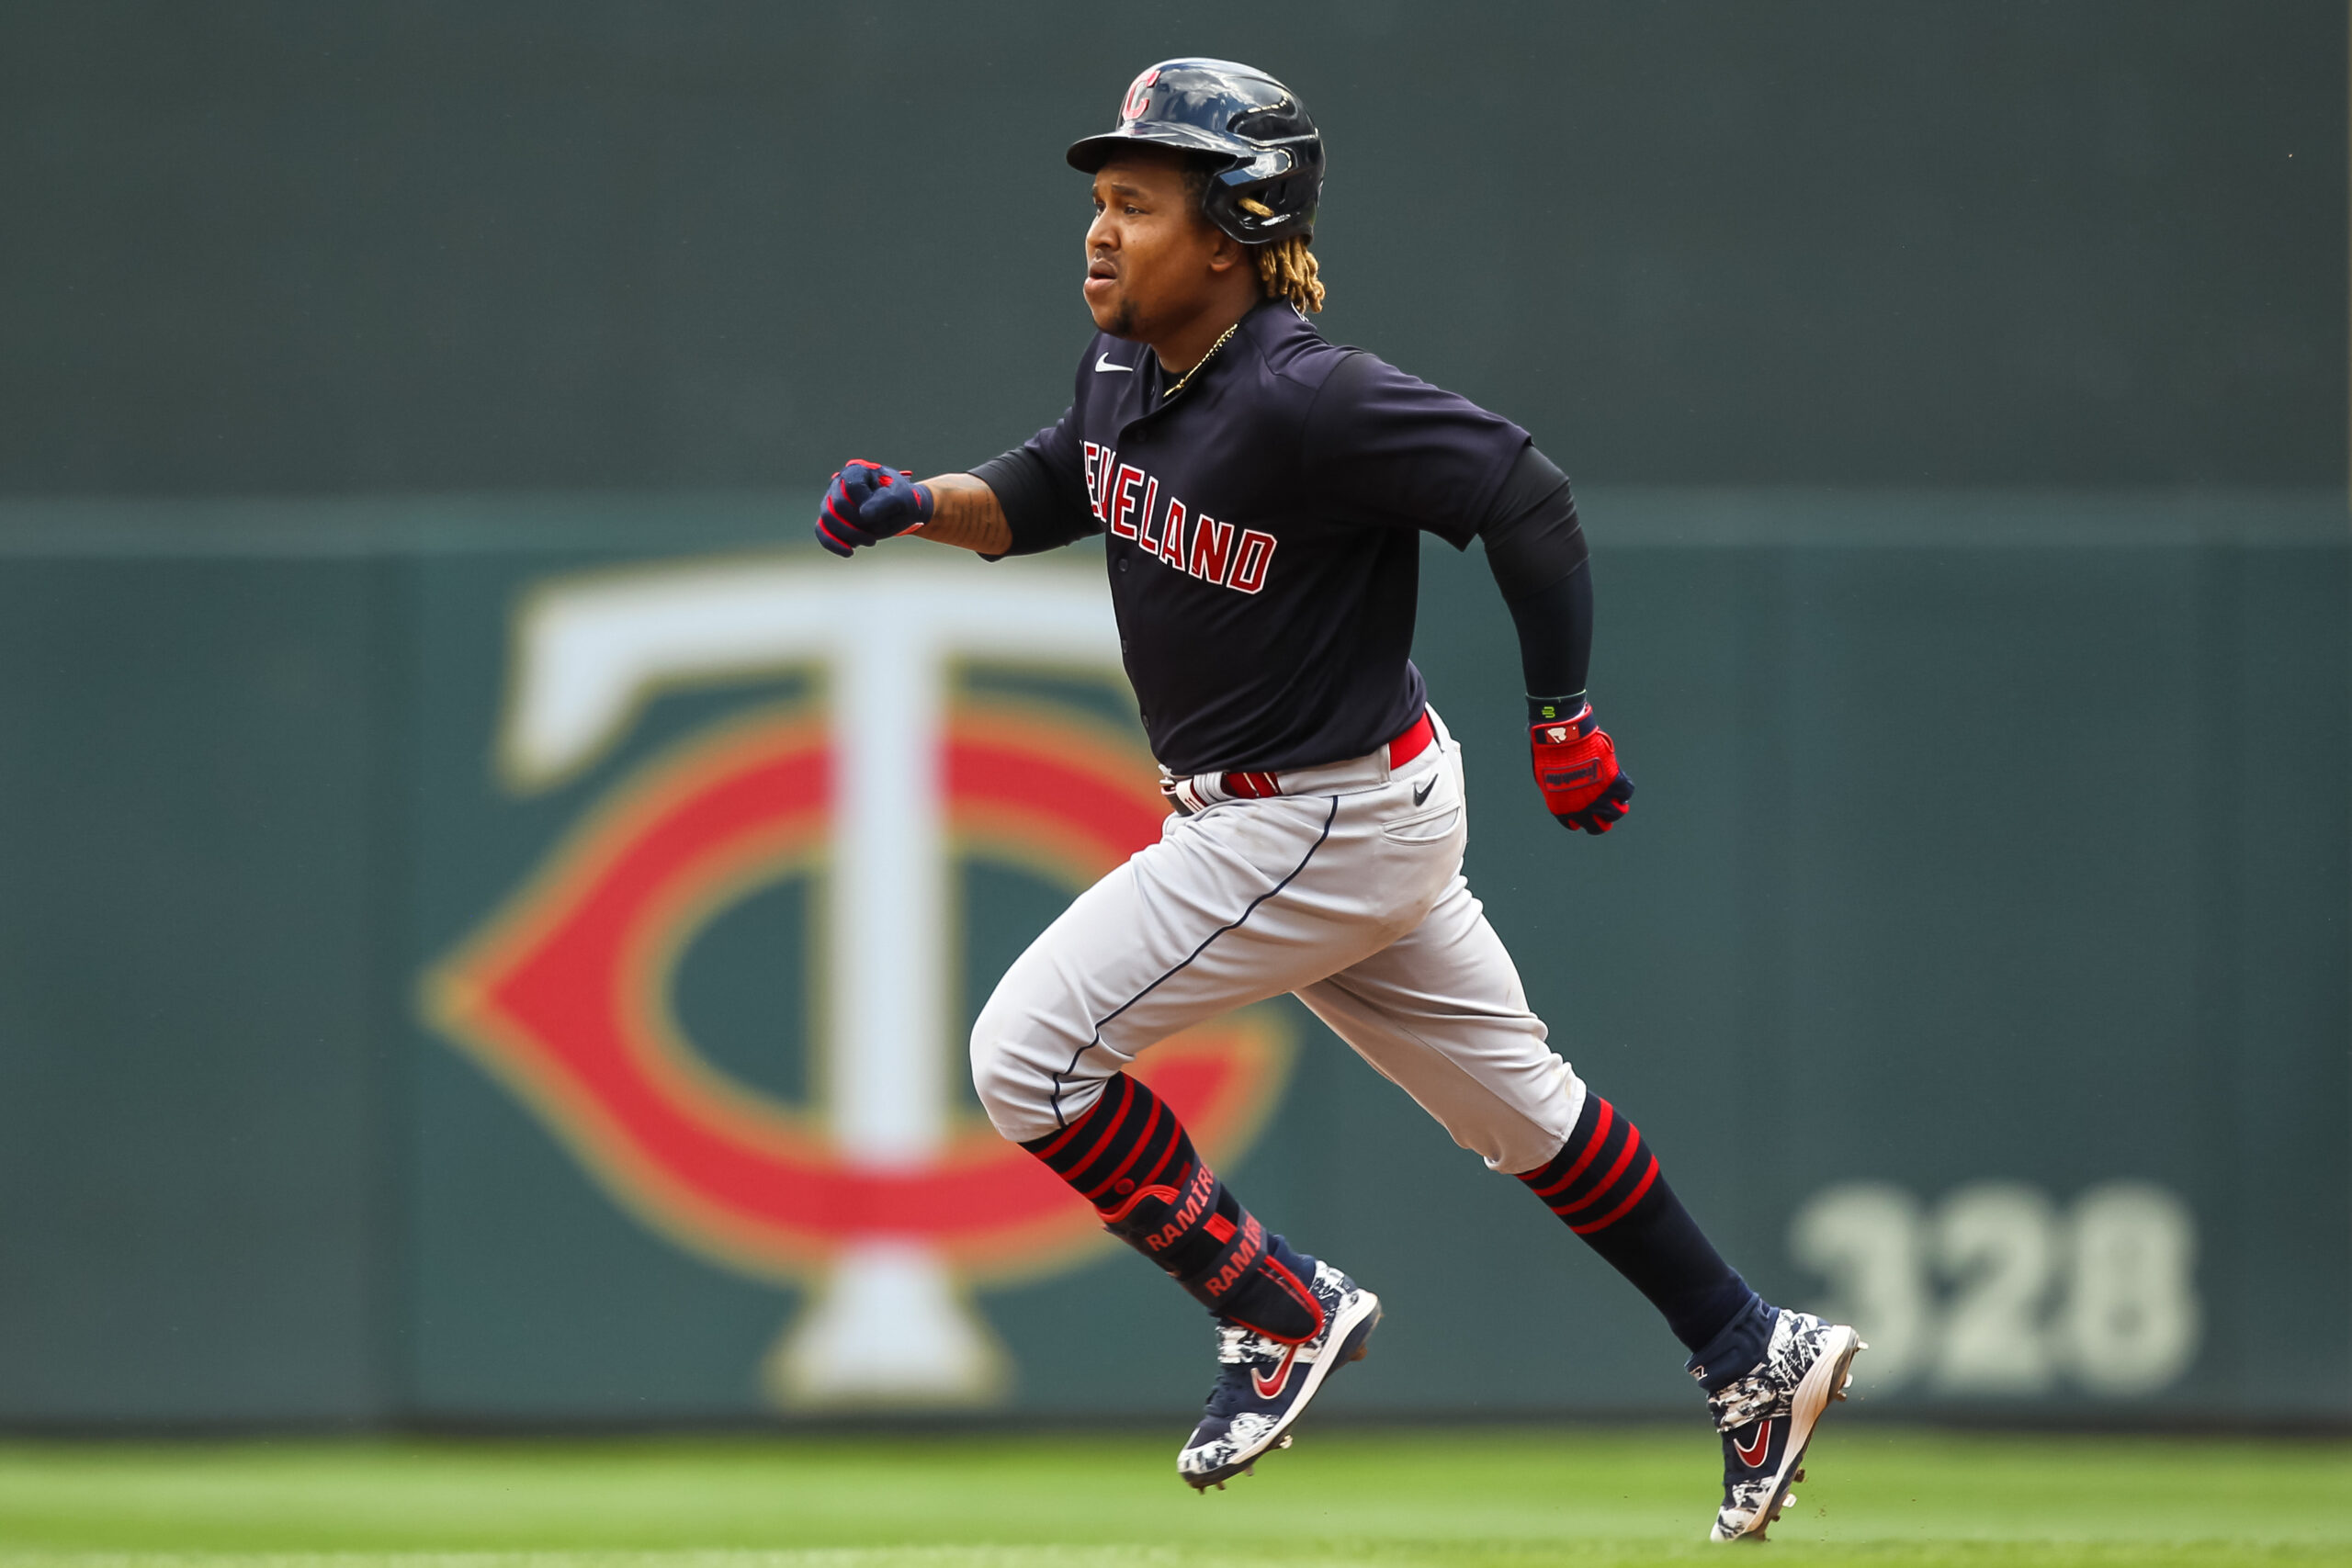 Jose Ramirez #11 of the Cleveland Indians advances to second base after hitting a double against the Minnesota Twins in the sixth inning of the game at Target Field on June 27, 2021 in Minneapolis, Minnesota. The Twins defeated the Indians 8-2.